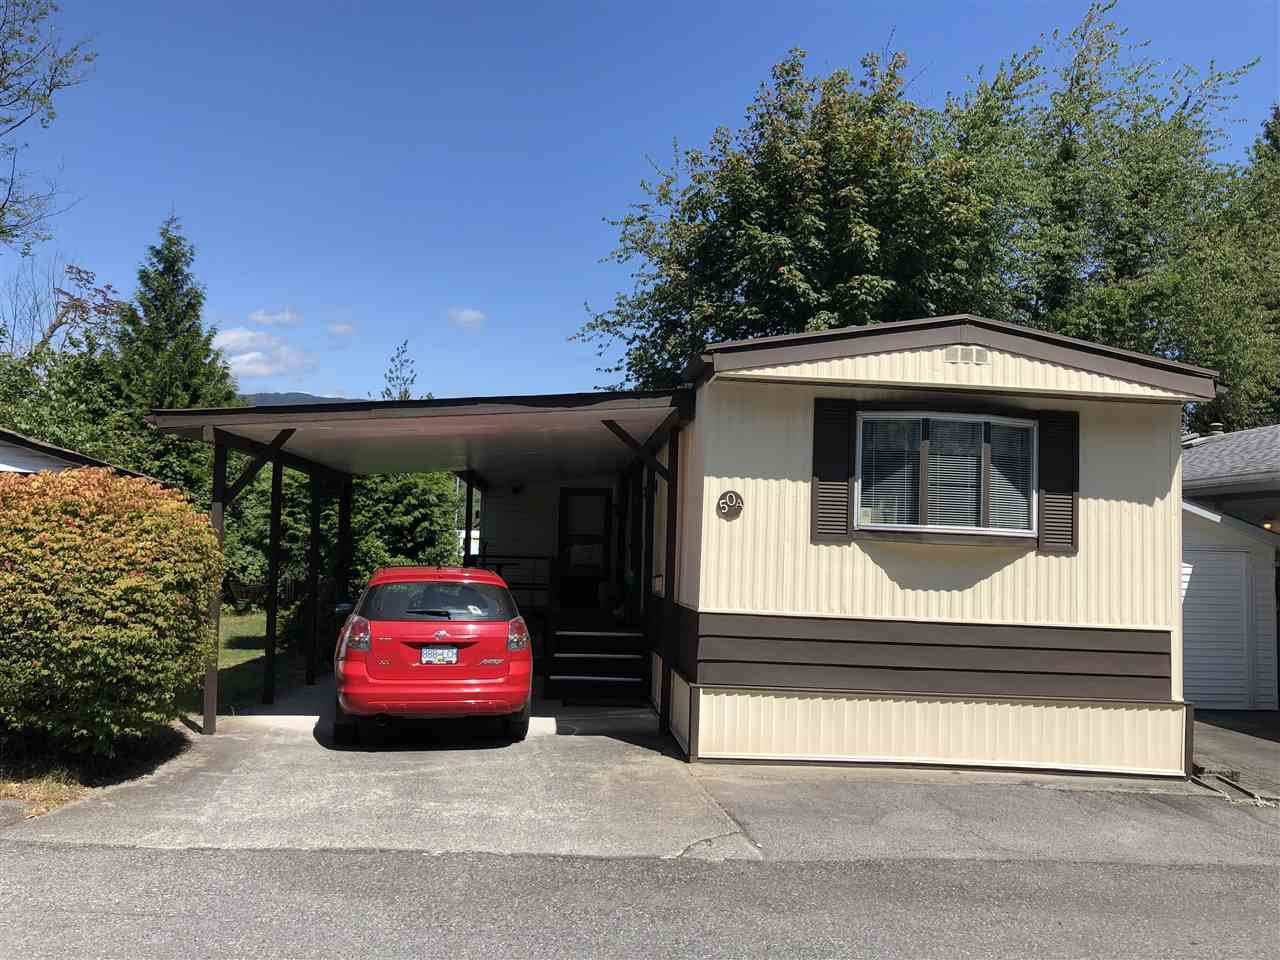 """Main Photo: 50A 4200 DEWDNEY TRUNK Road in Coquitlam: Central Coquitlam Manufactured Home for sale in """"Hideaway"""" : MLS®# R2392763"""